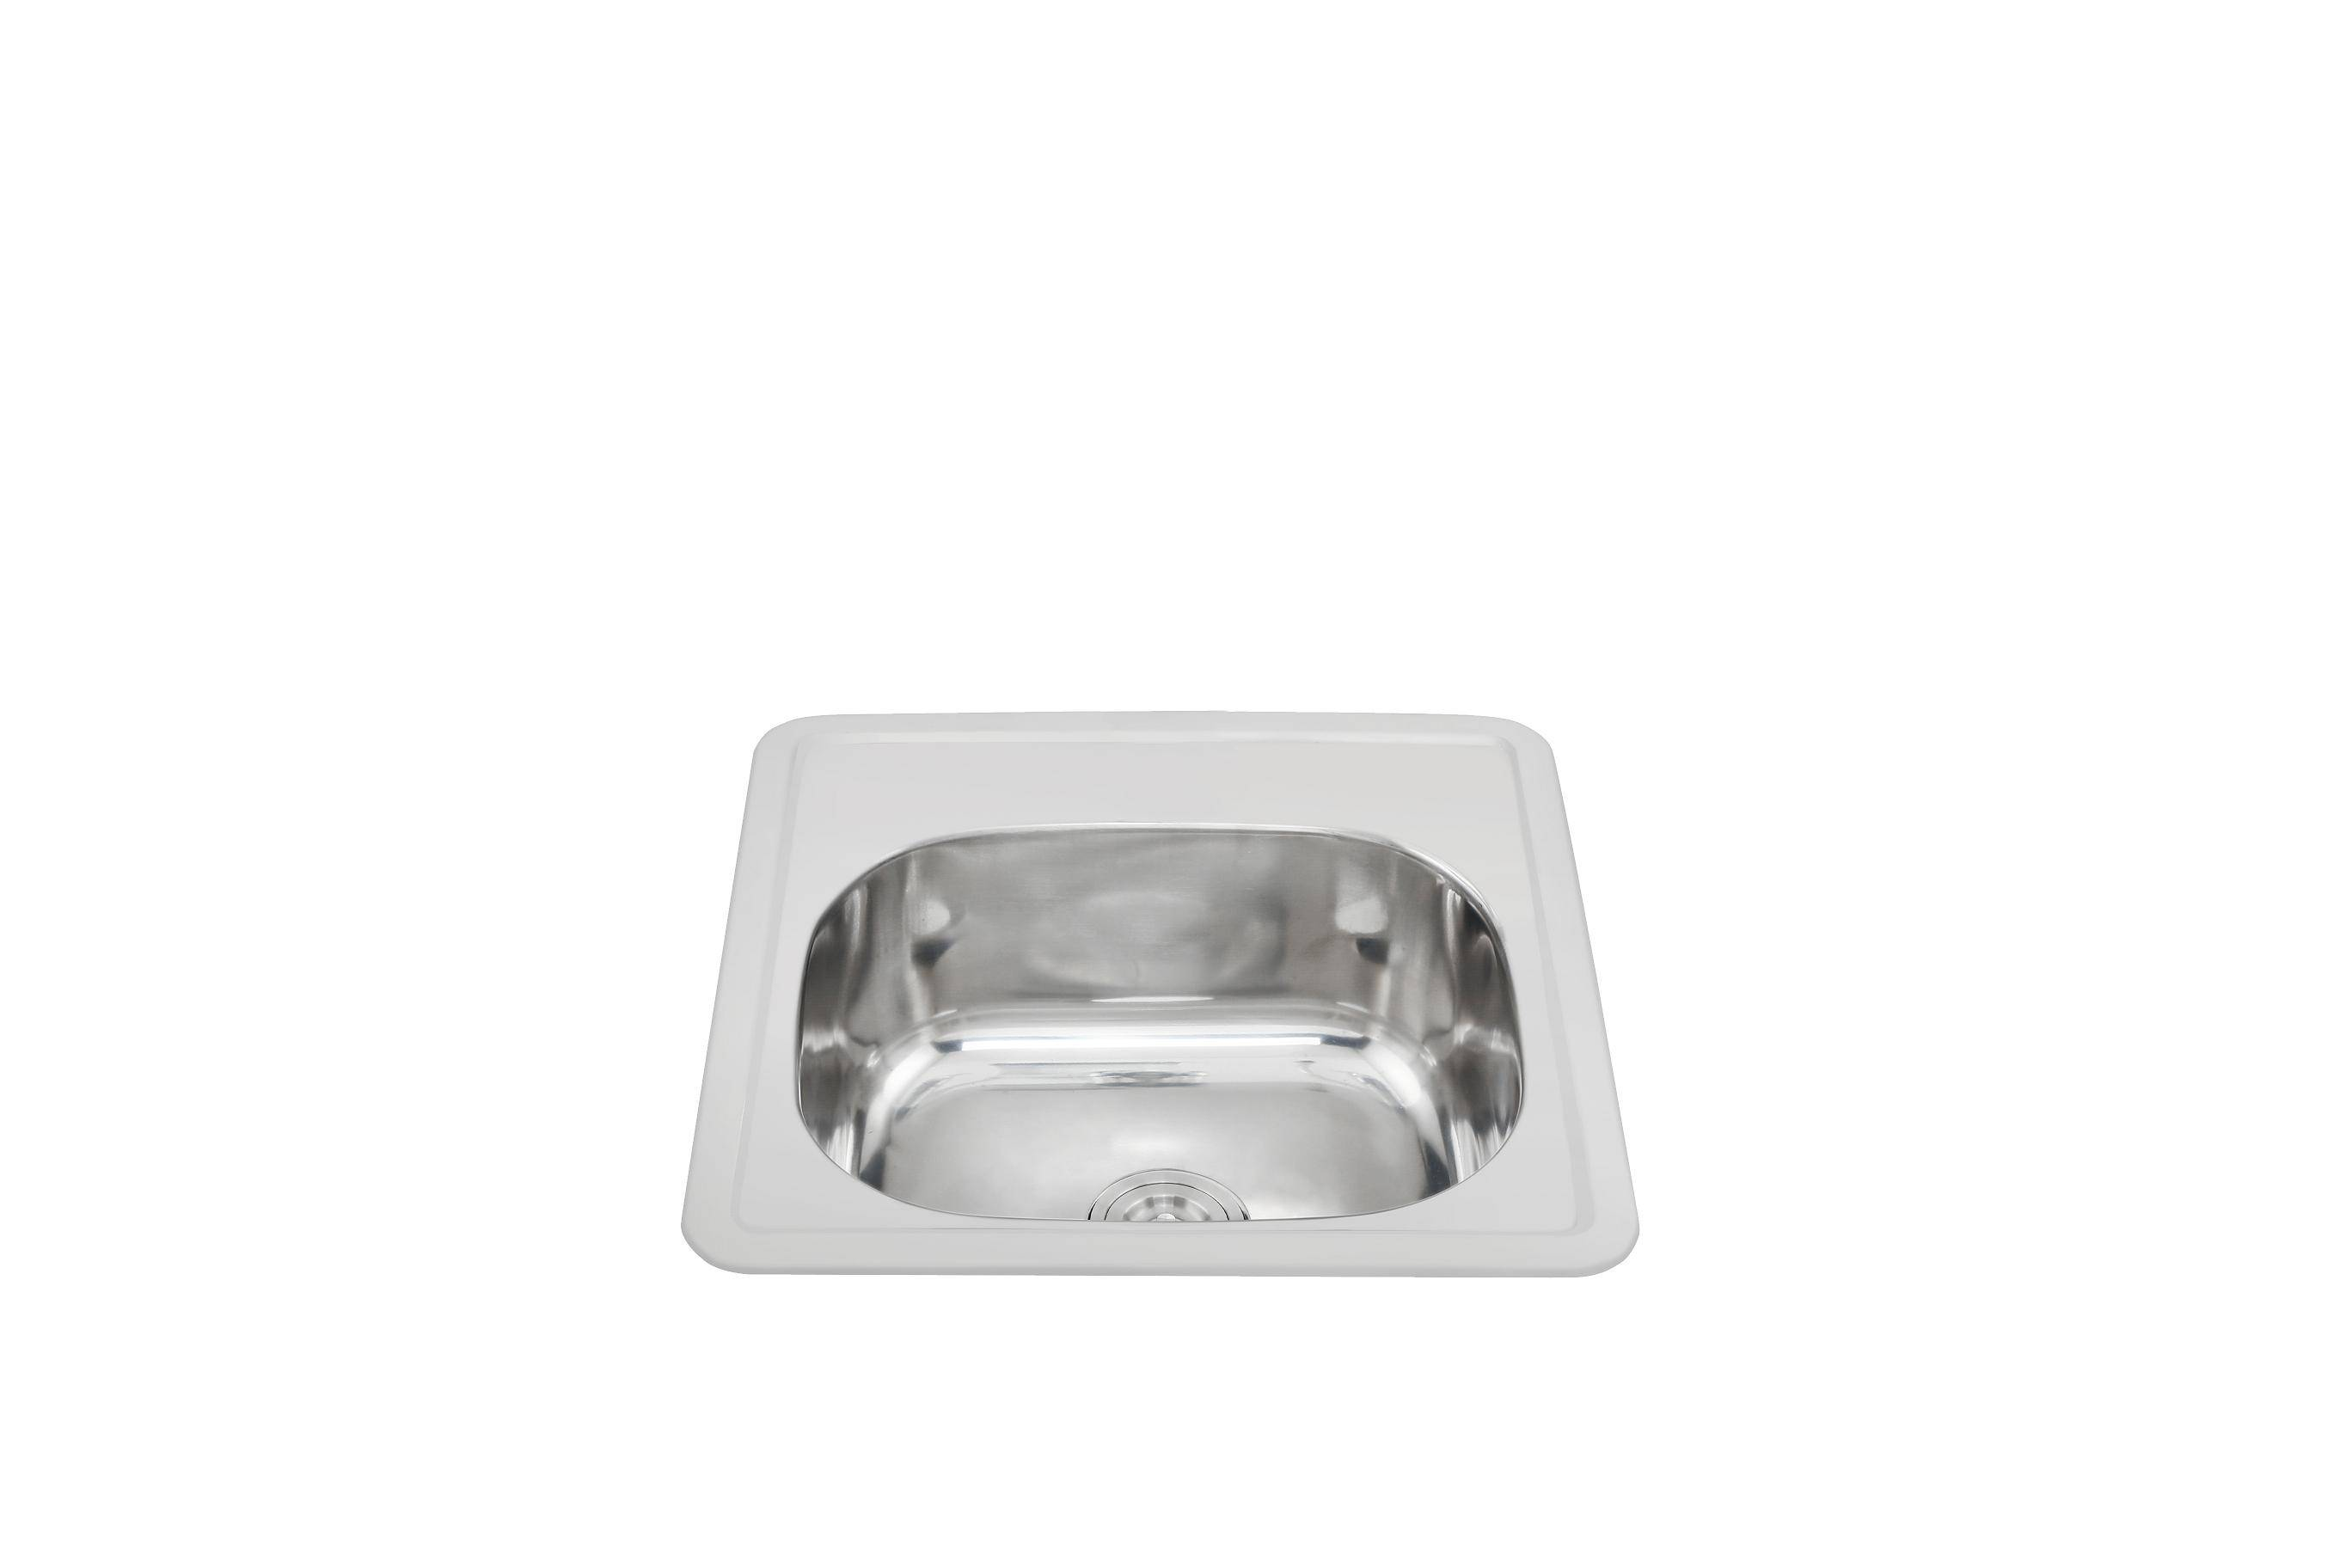 Chinese manufacturer square bowl kitchen sink for sale WY-4848